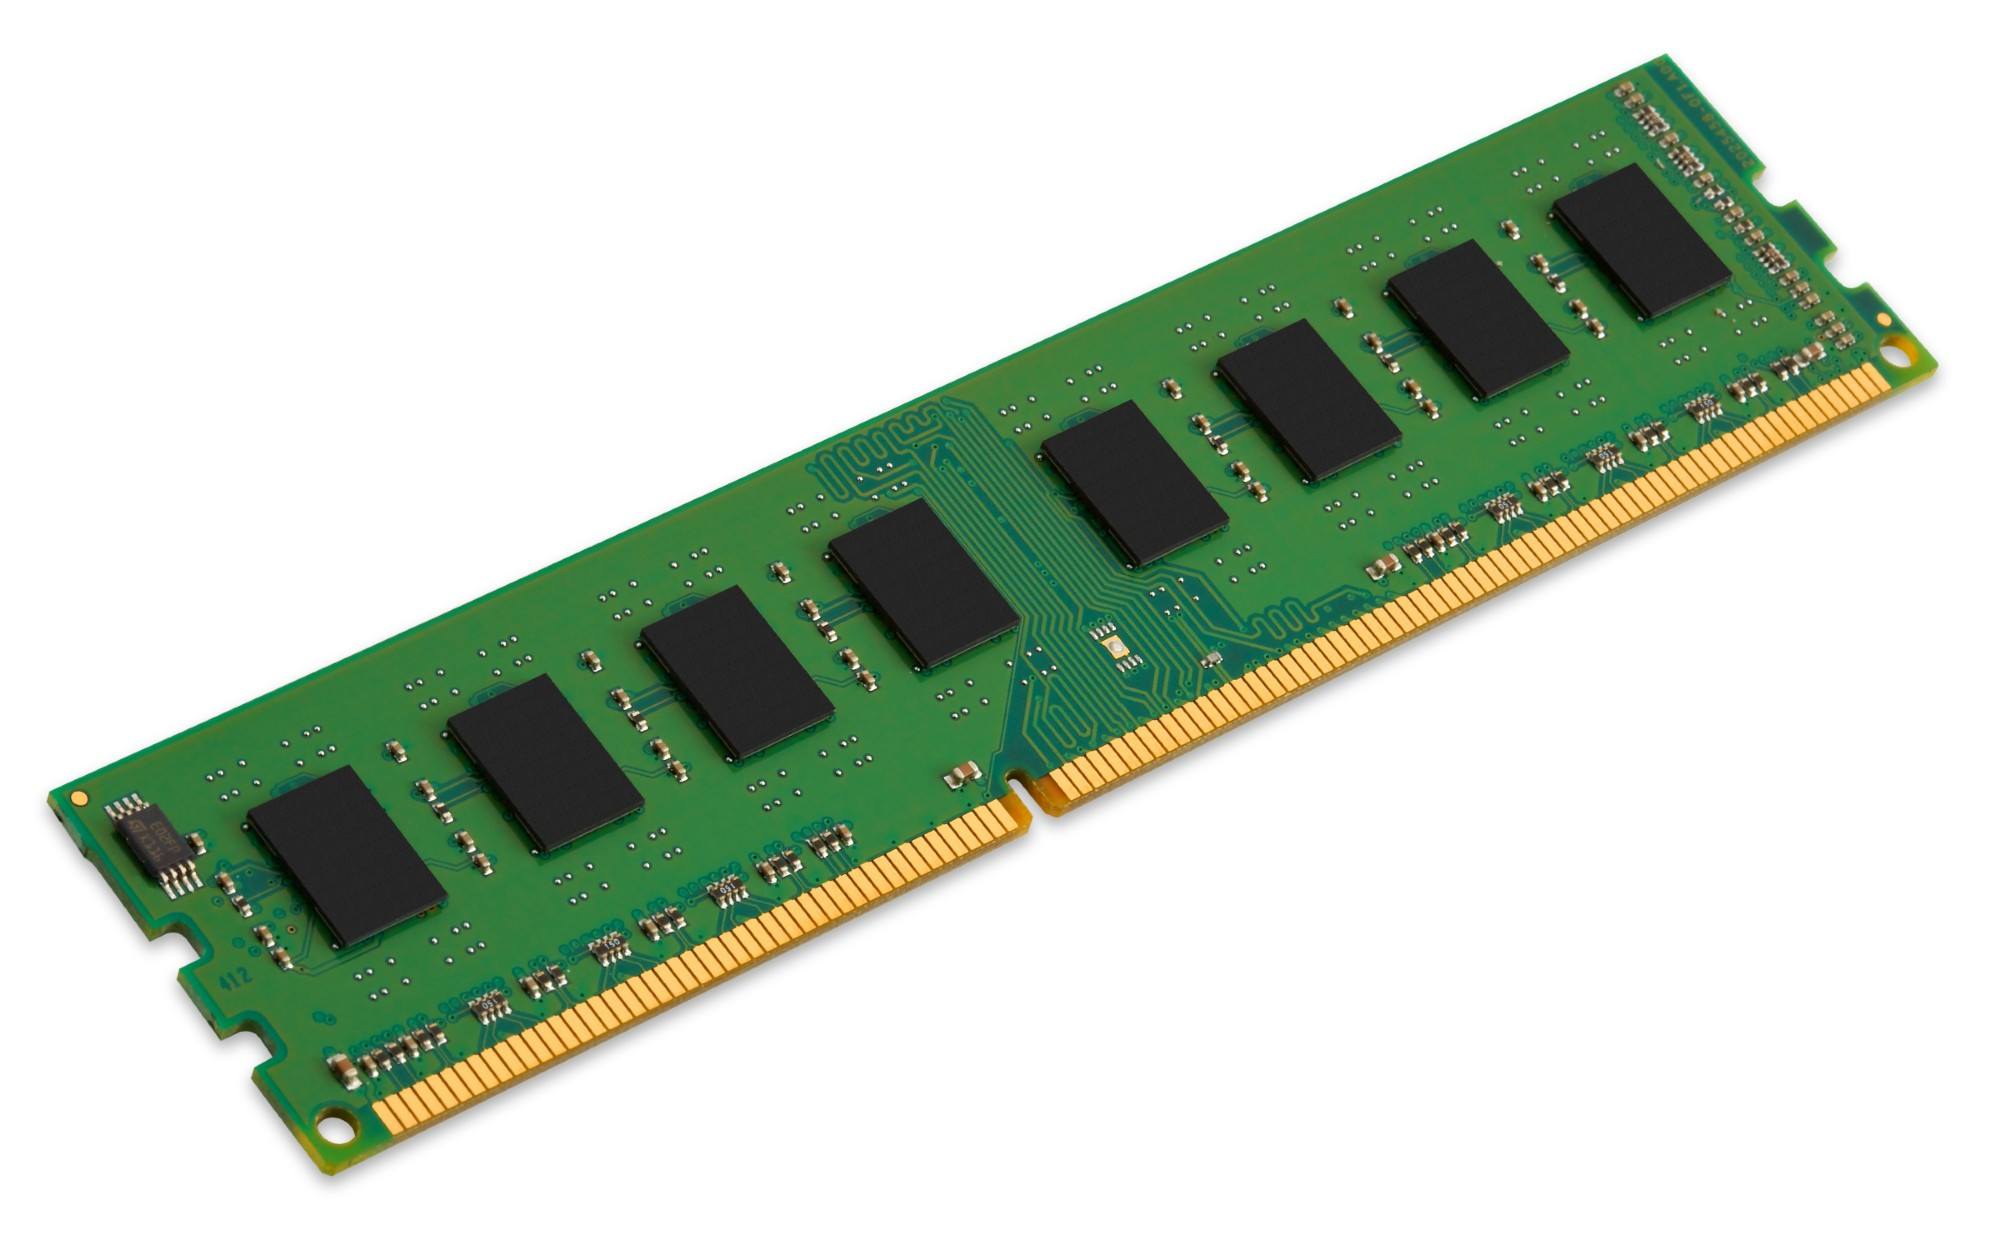 KINGSTON VALUERAM 4GB DDR3 1600MHZ MODULE DDR3L MEMORY